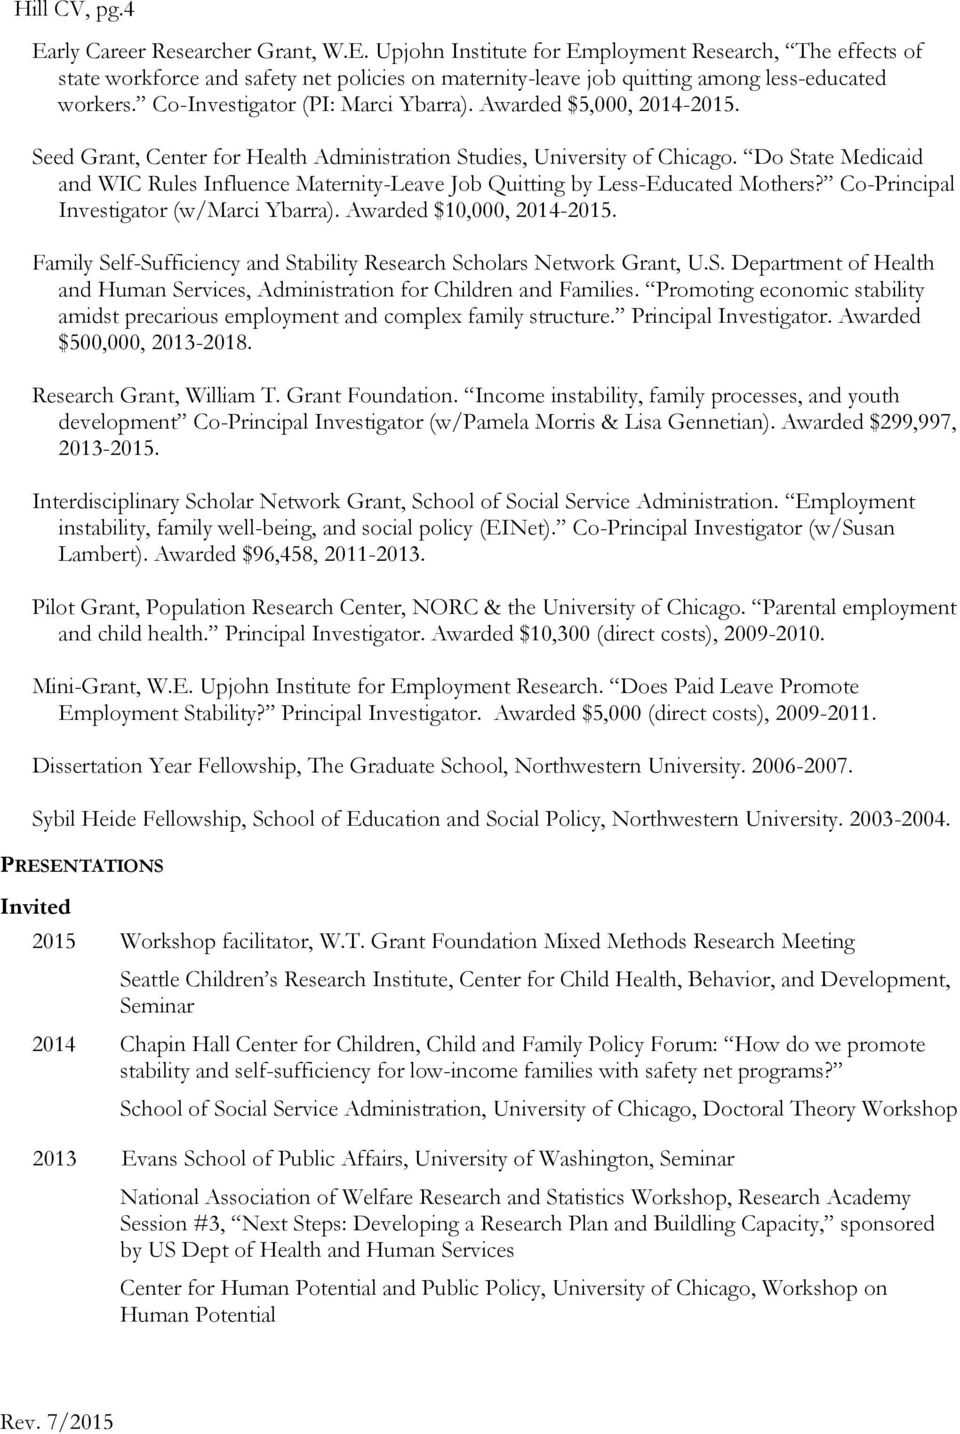 Do State Medicaid and WIC Rules Influence Maternity-Leave Job Quitting by Less-Educated Mothers? Co-Principal Investigator (w/marci Ybarra). Awarded $10,000, 2014-2015.